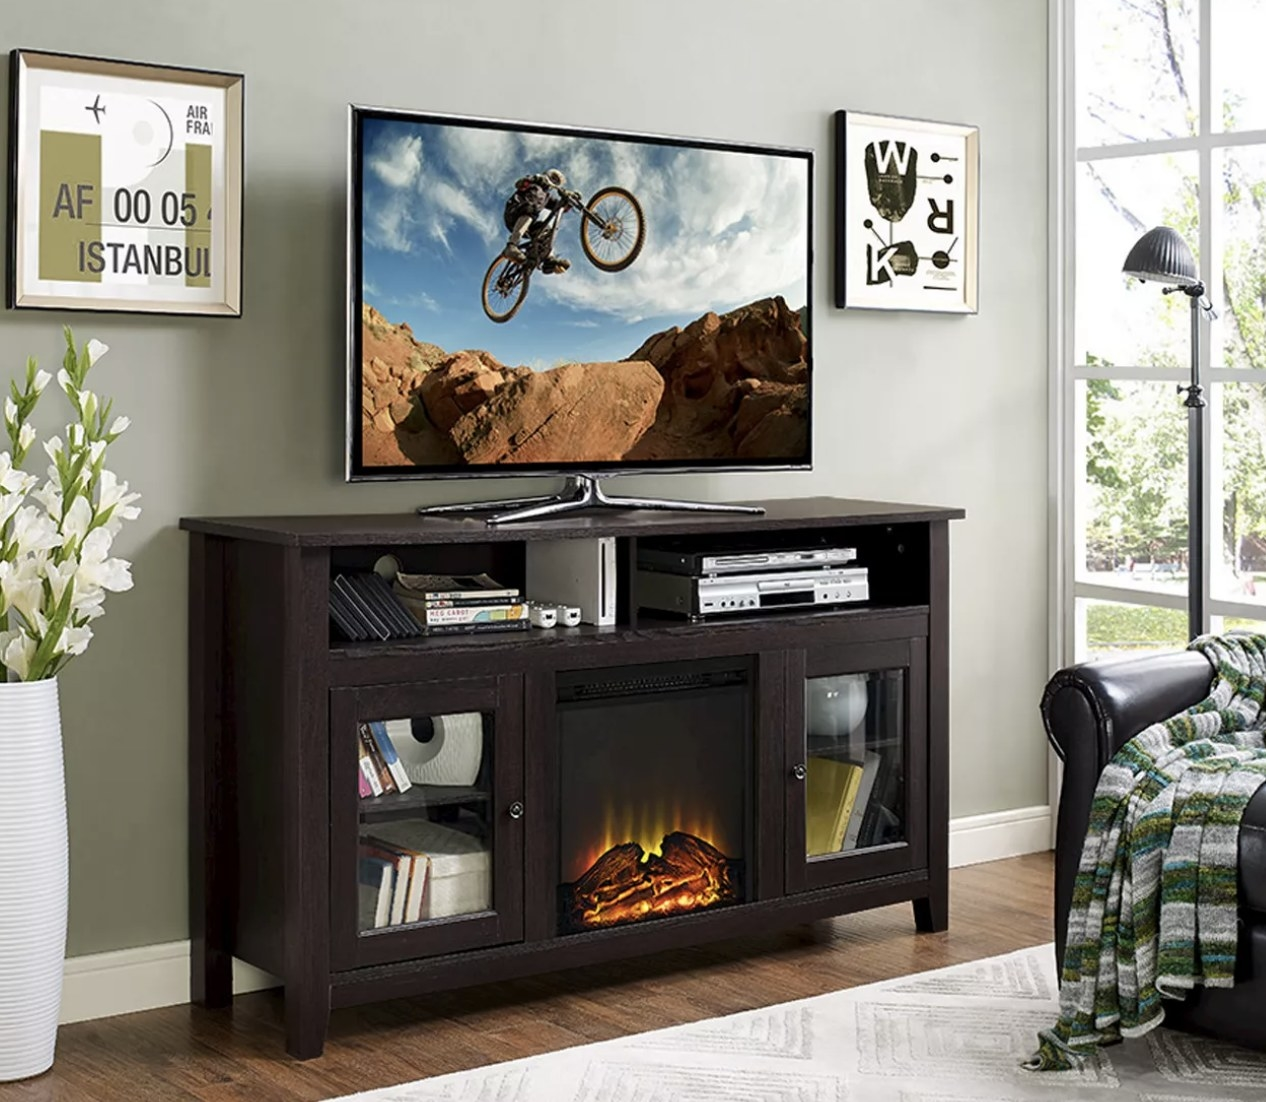 A TV stand with fireplace